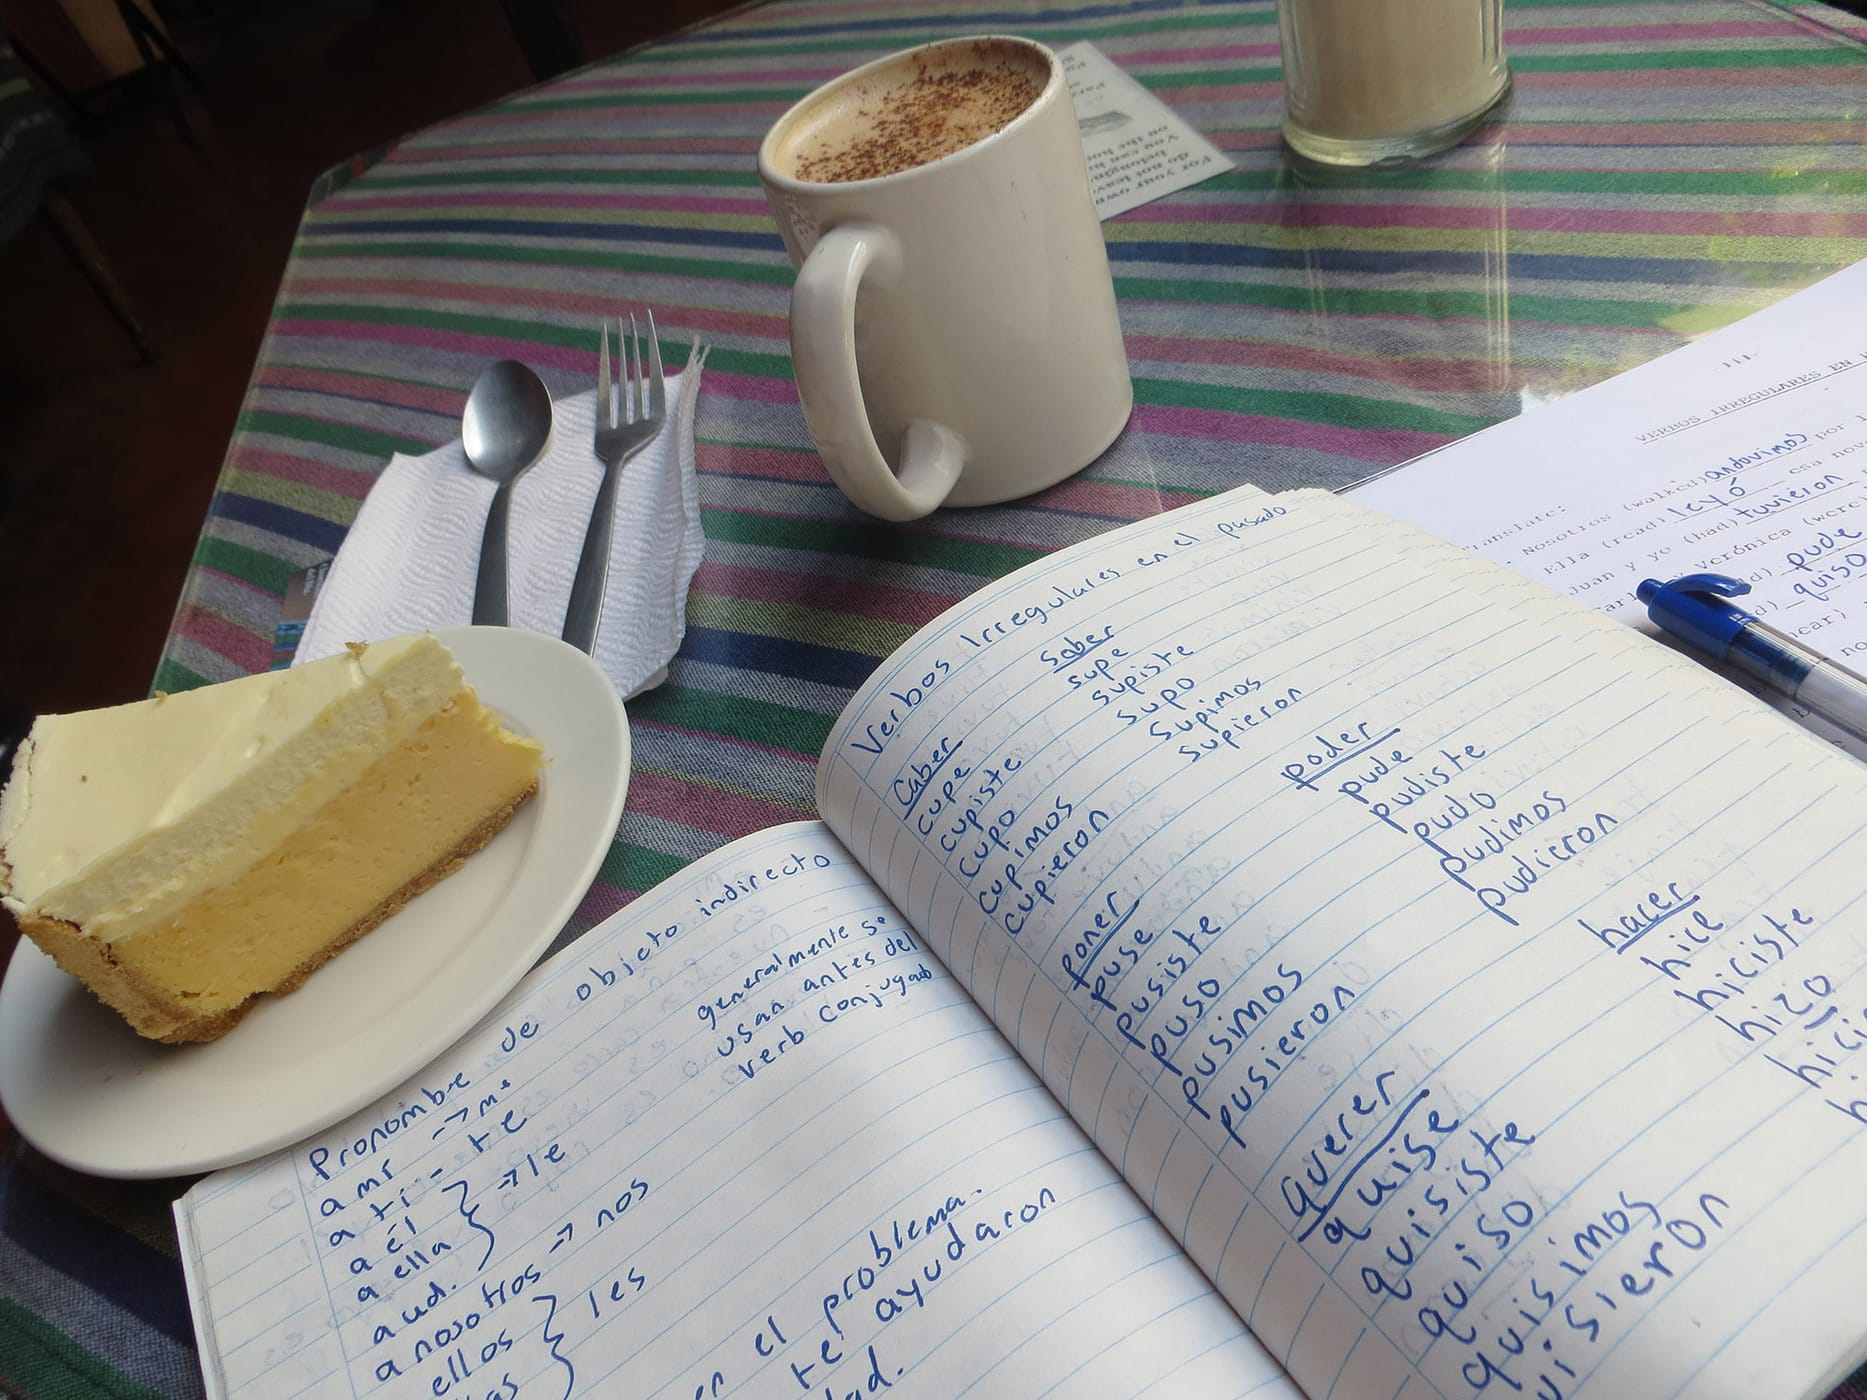 Studying Spanish over coffee and cake in Antigua, Guatemala